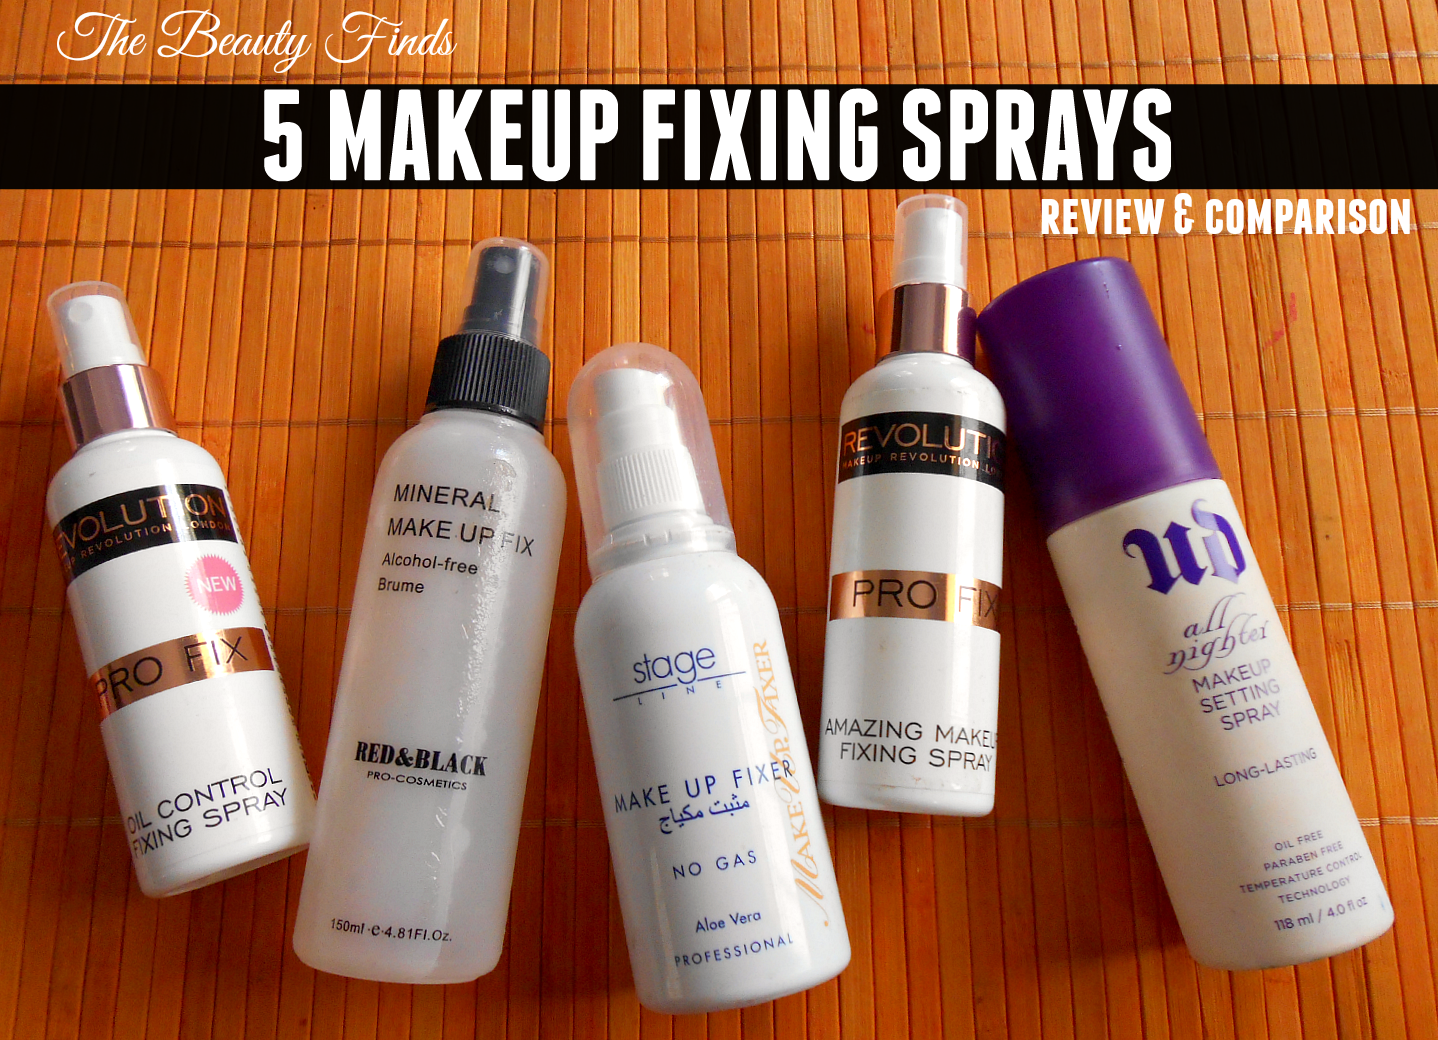 Fix Oil Control Makeup Fixing Spray by Revolution Beauty #12